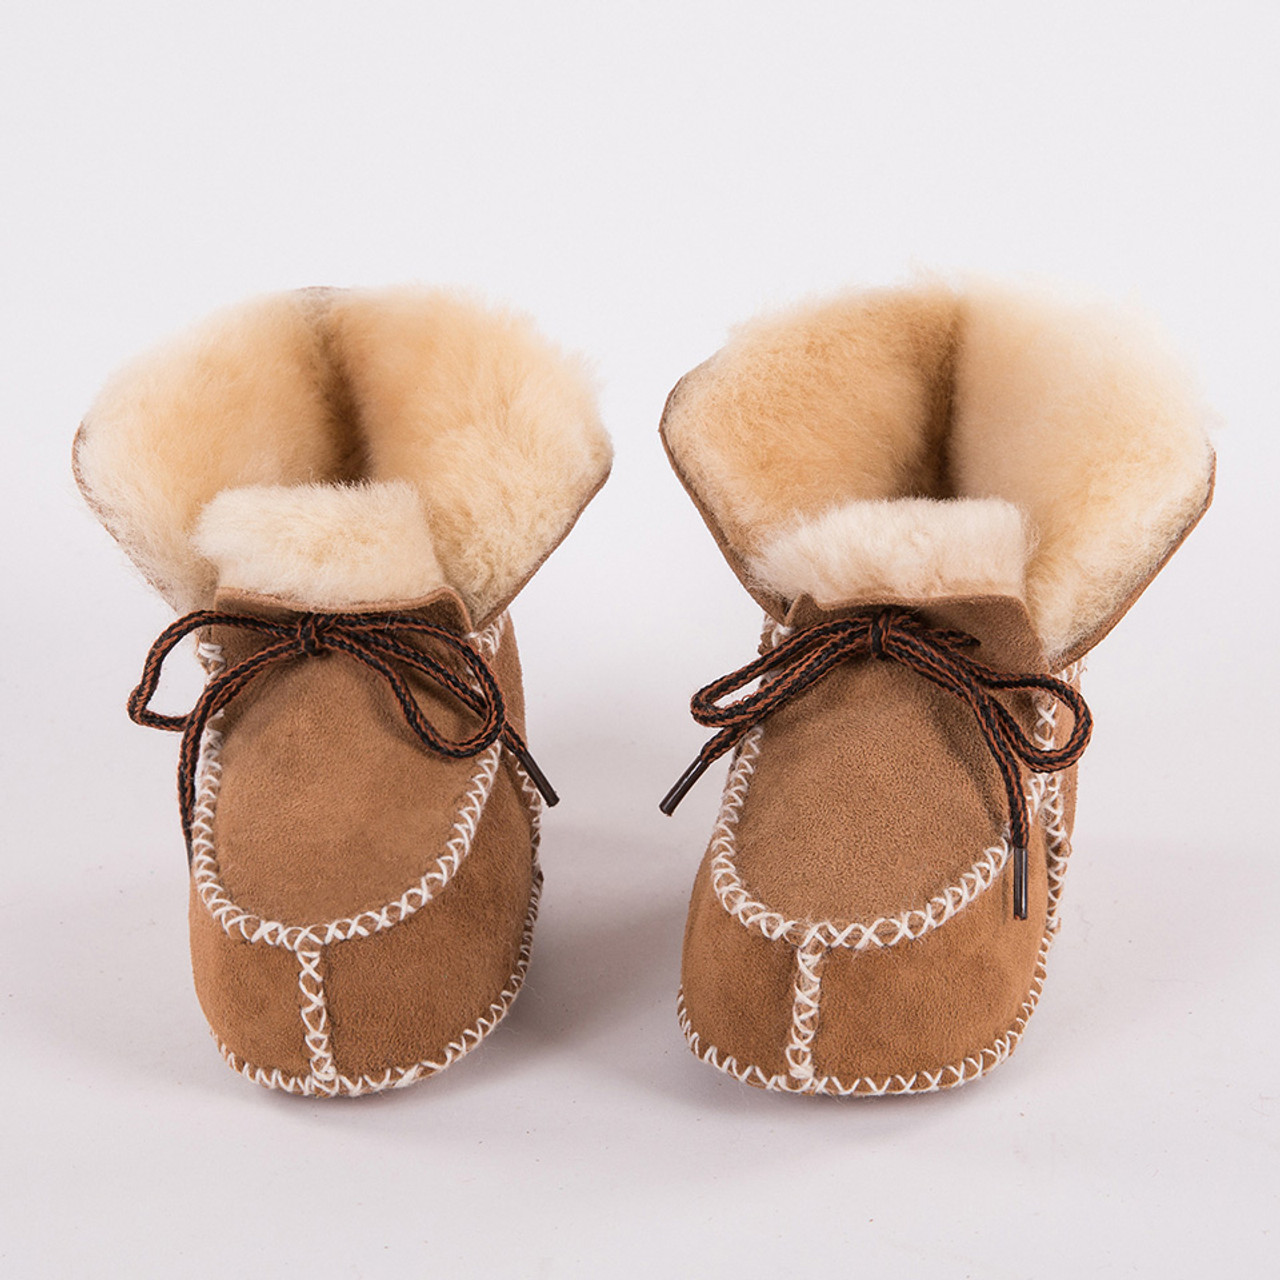 90532a74ca9 New Keep warm winter Genuine Leather Wool fur baby boy boots toddler girls  soft Moccasins shoes with plush Sheepskin booties